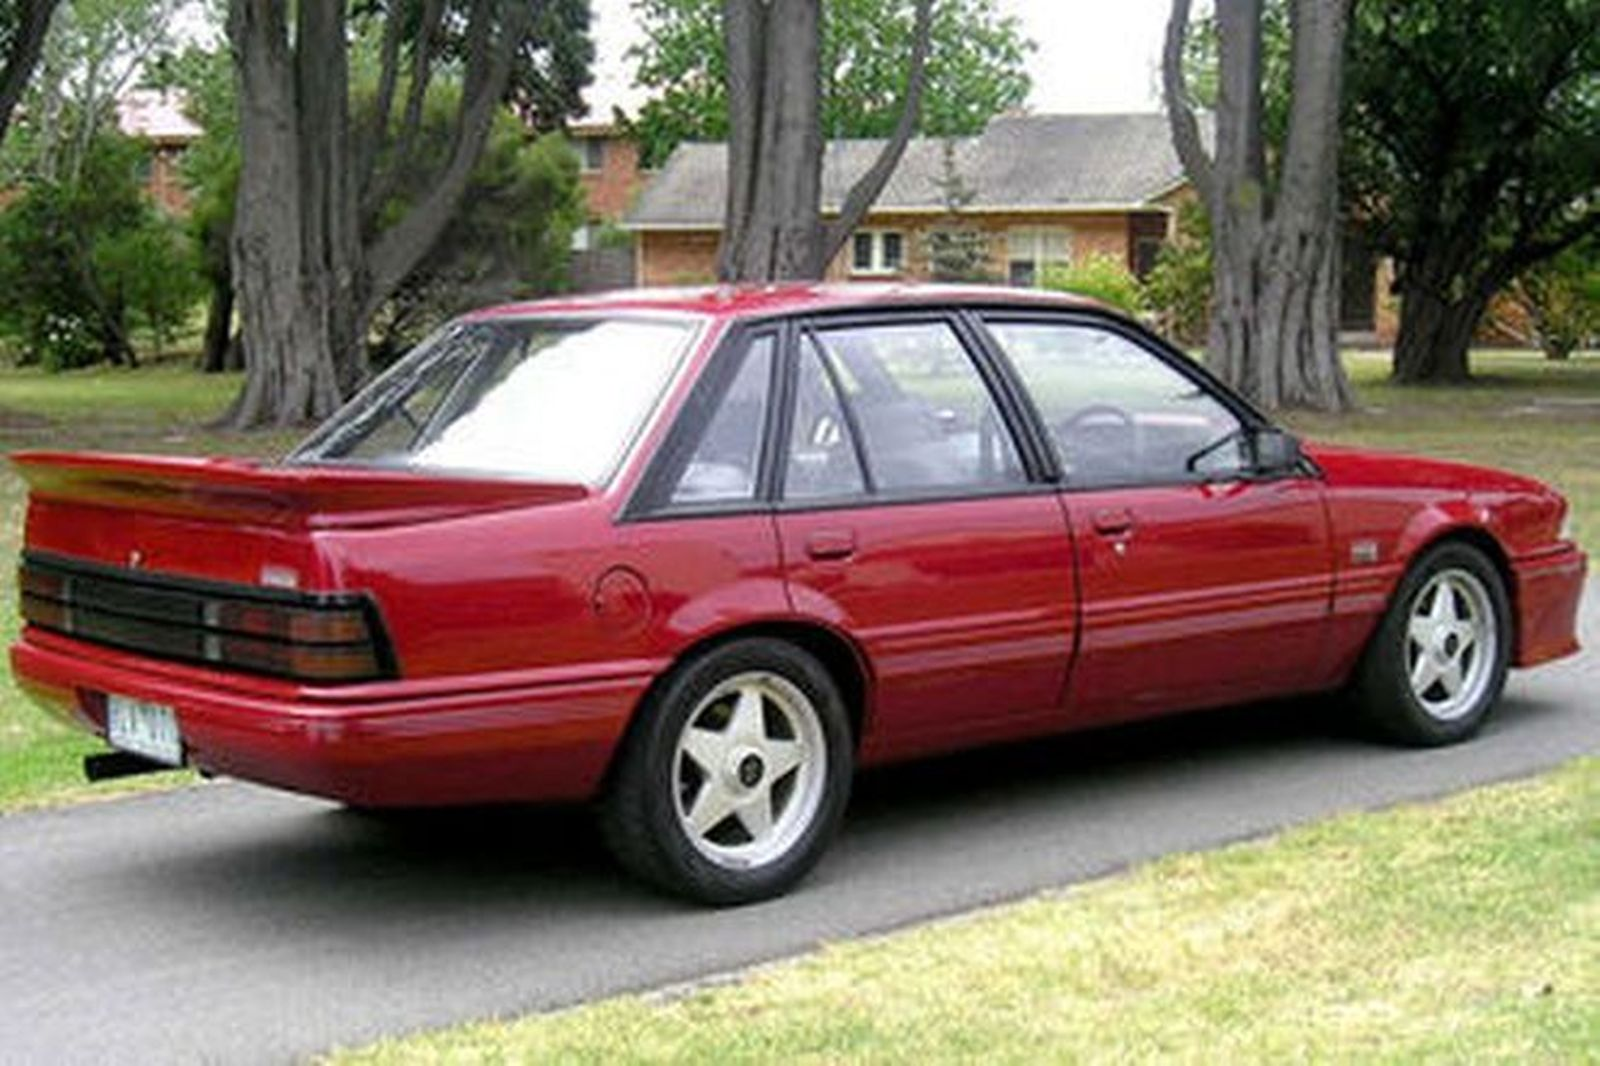 1986 Holden Vl: Holden VL Commodore SS Group 'A' Sedan Auctions